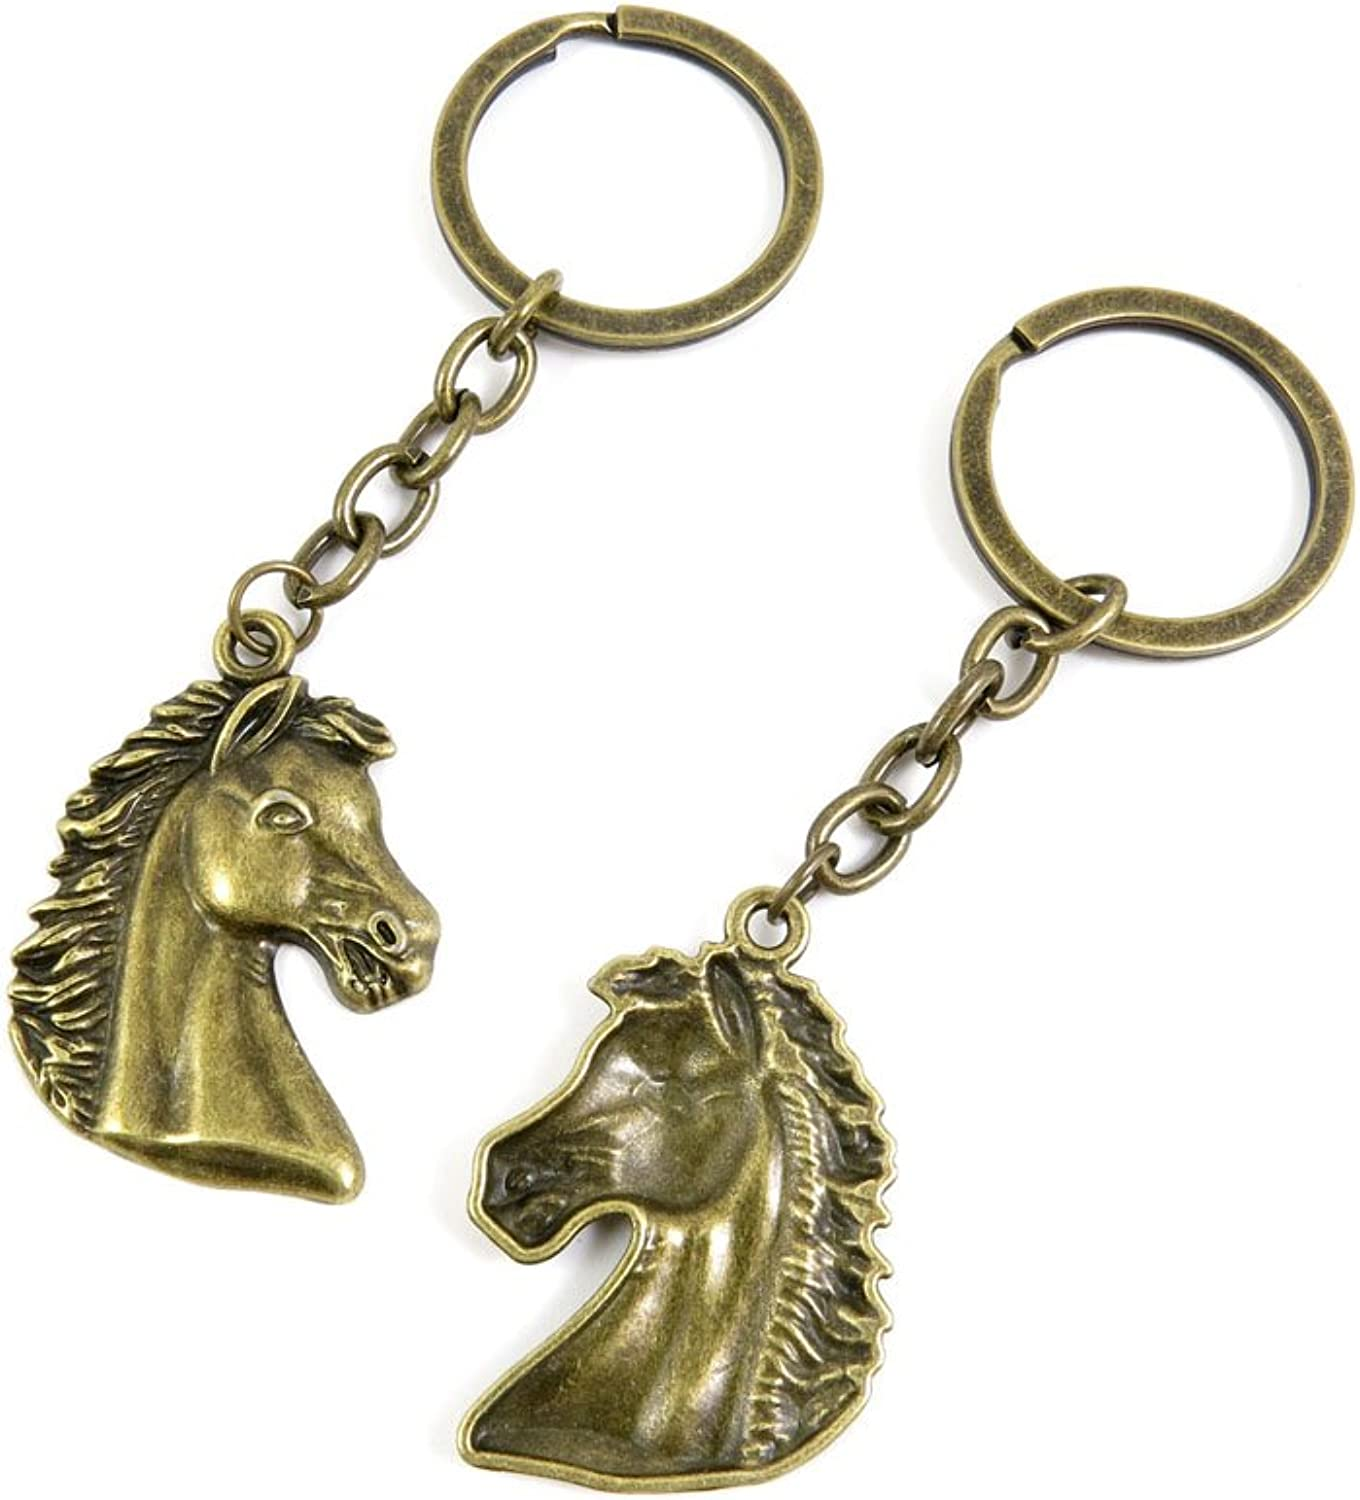 150 Pieces Fashion Jewelry Keyring Keychain Door Car Key Tag Ring Chain Supplier Supply Wholesale Bulk Lots F8TP7 Horse Head